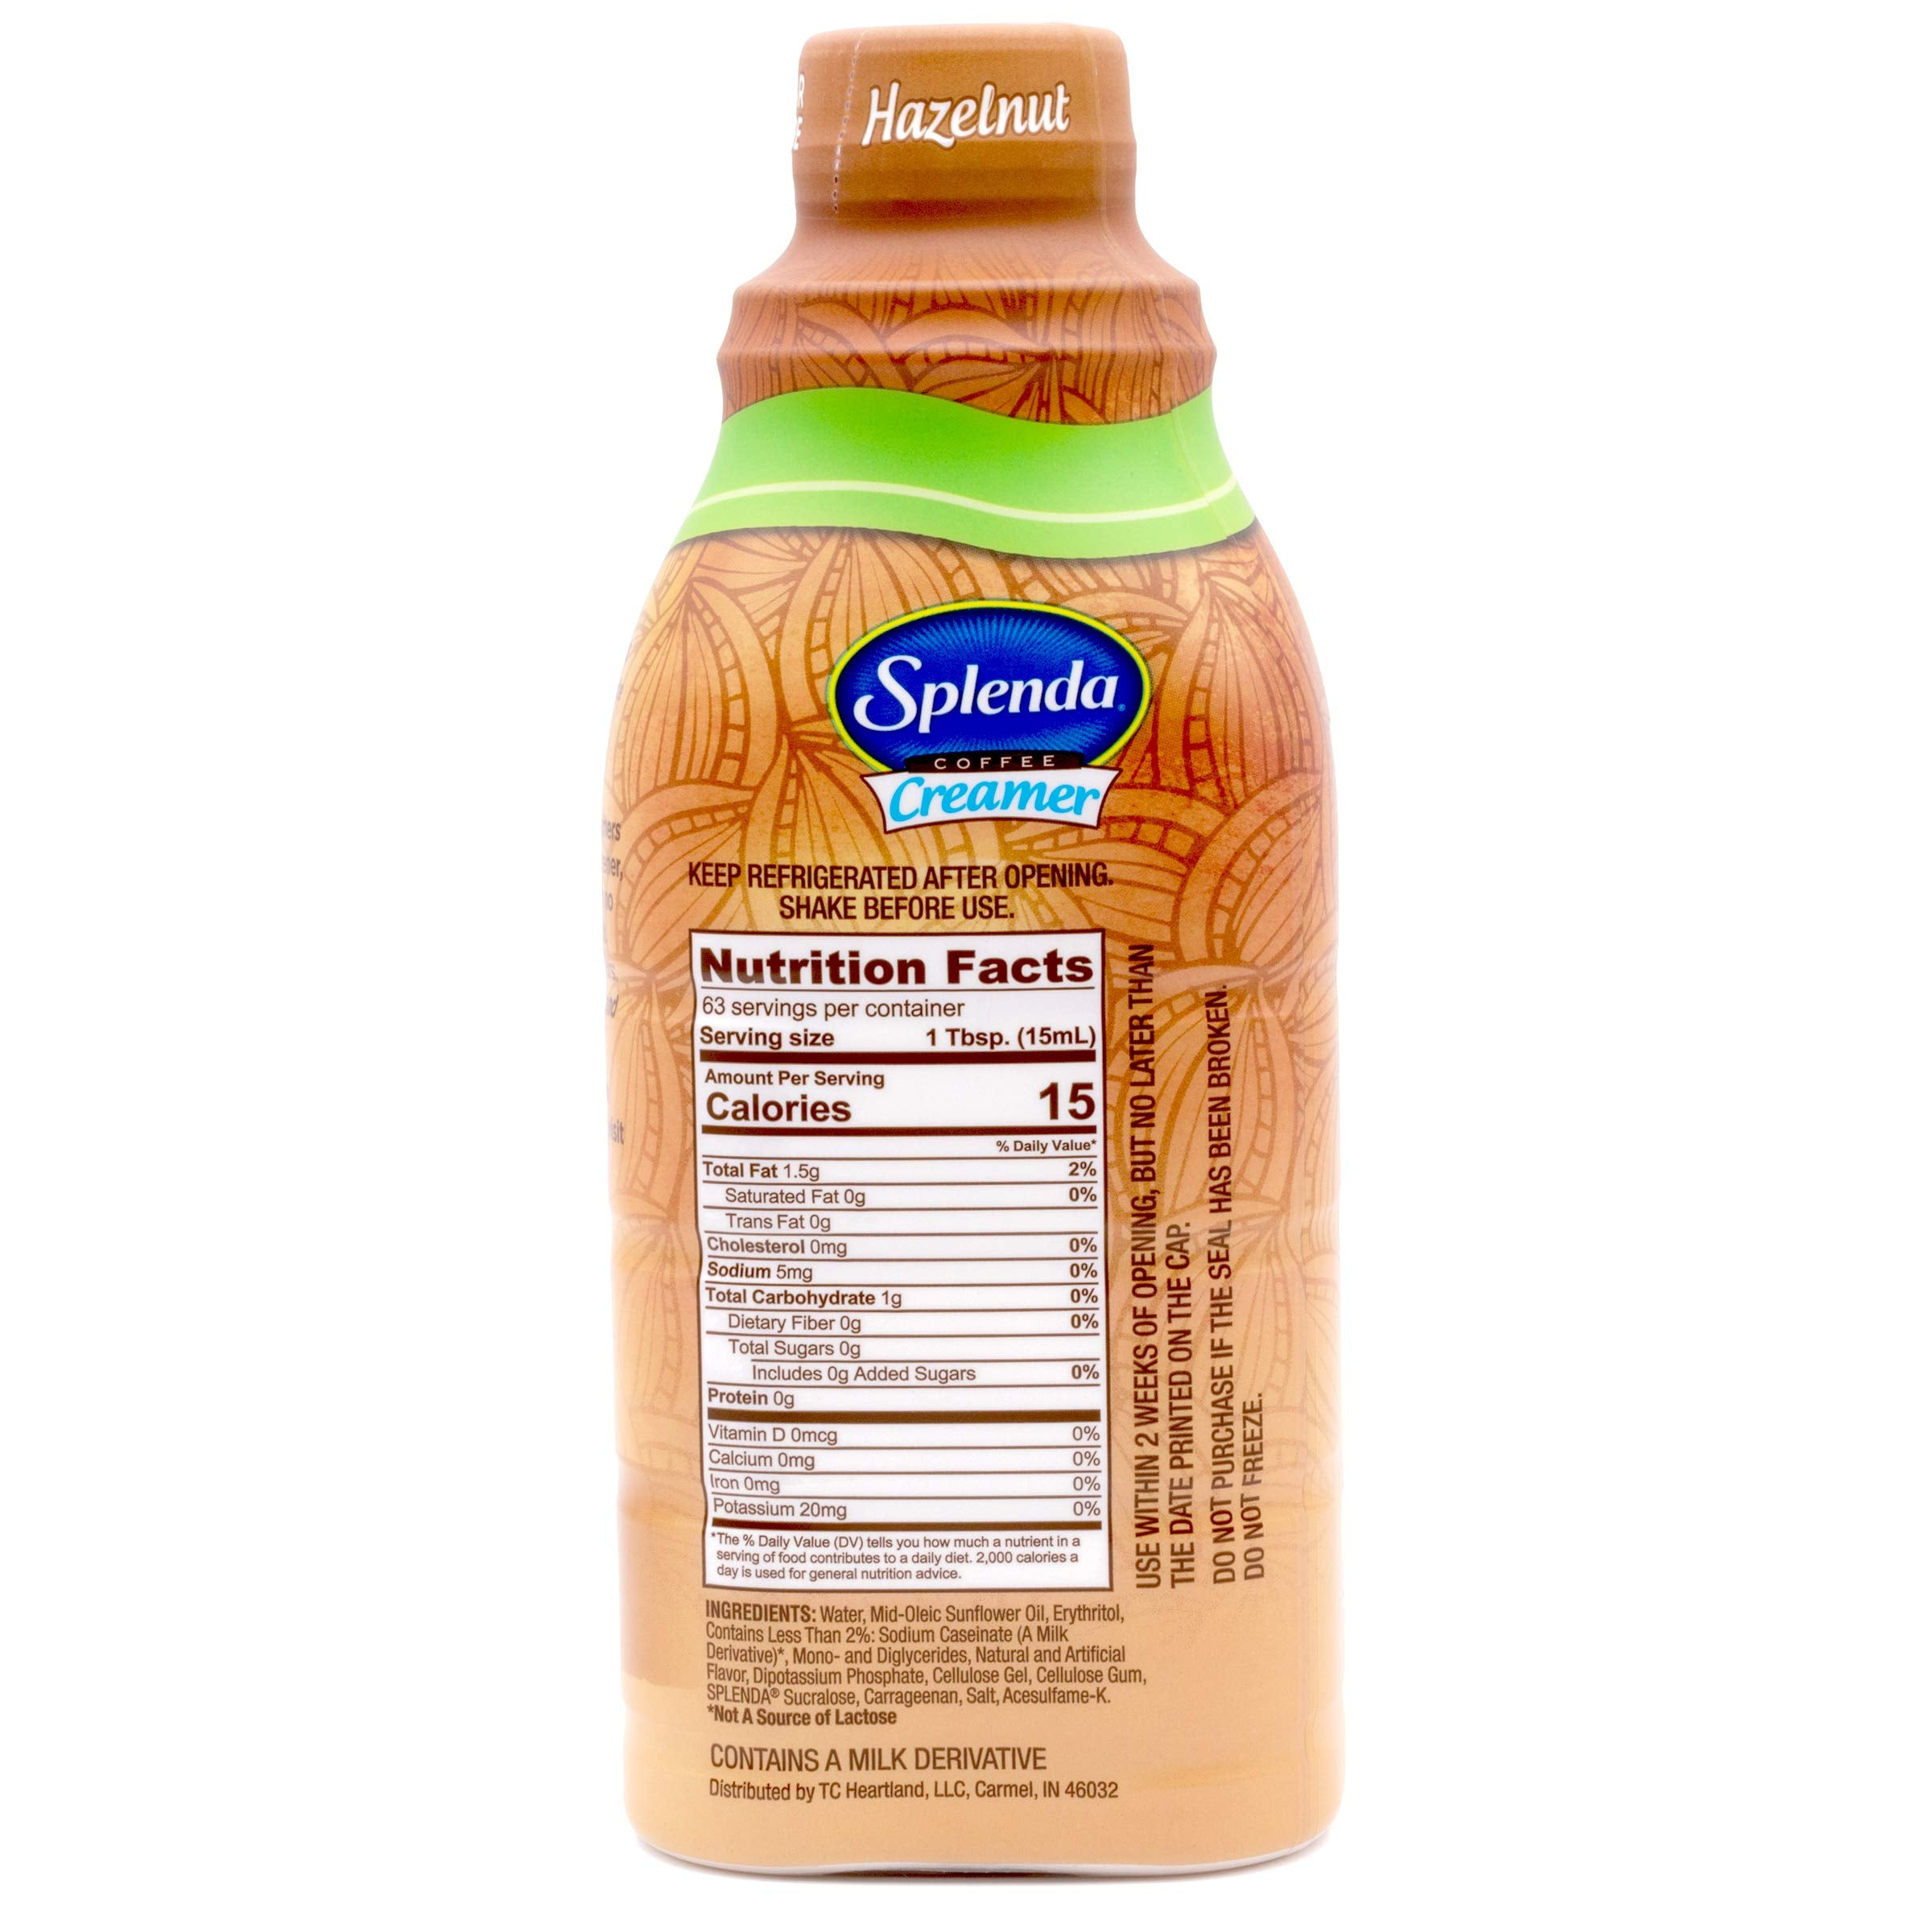 SPLENDA Sugar Free, Low Calorie Hazelnut Coffee Creamer. Pack of 6 (32oz. Bottles)